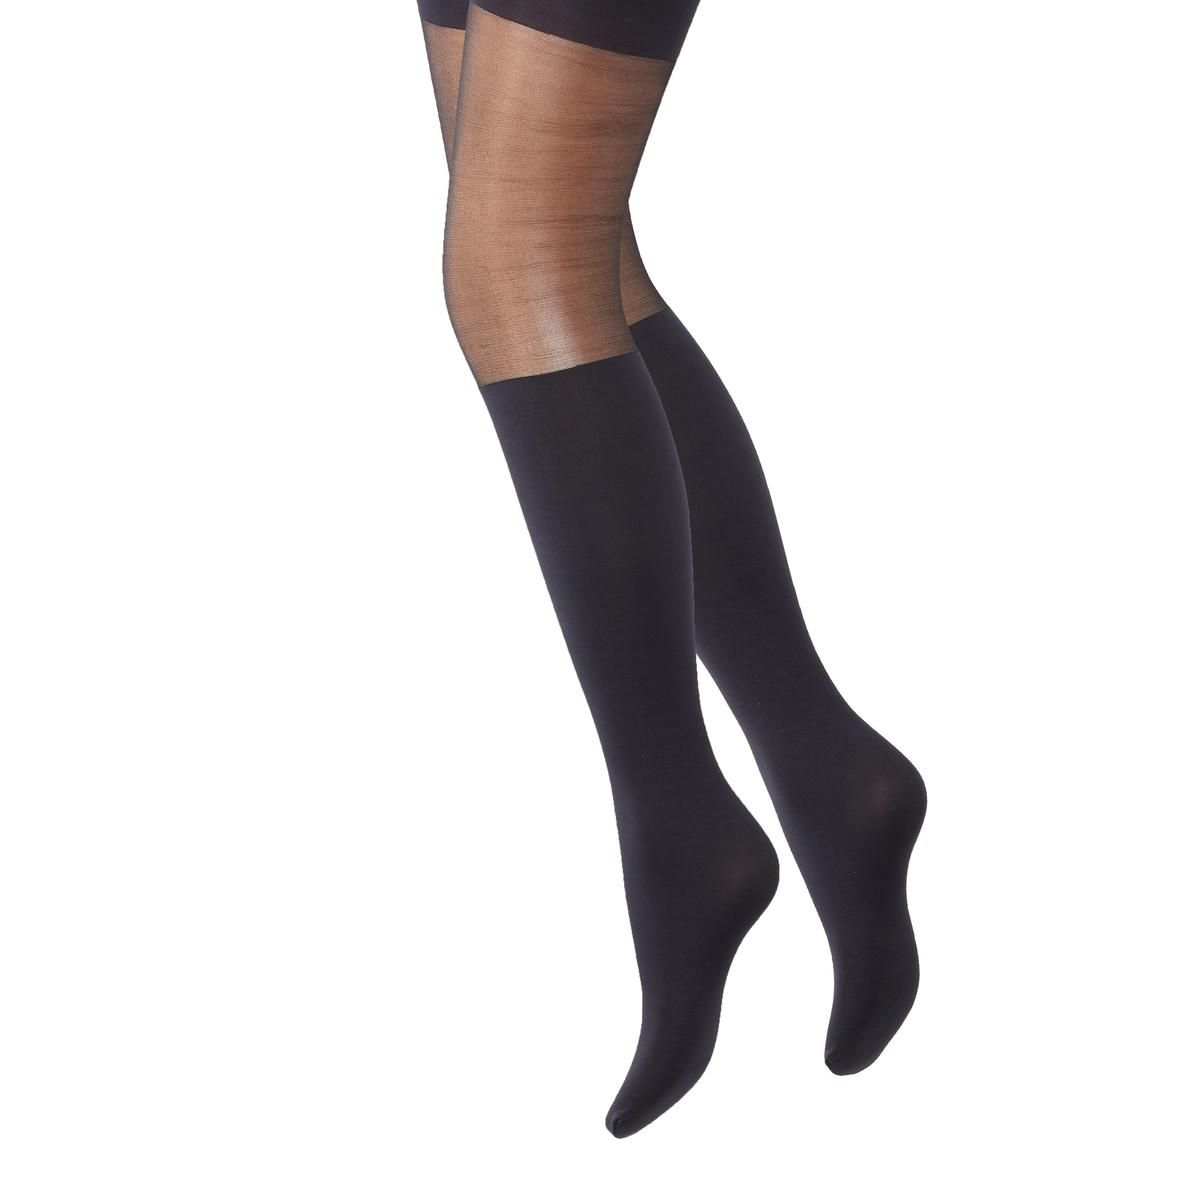 98cbead0673b3 Lyst - La Redoute Pack Of 2 Pairs Of Fancy Tights in Black